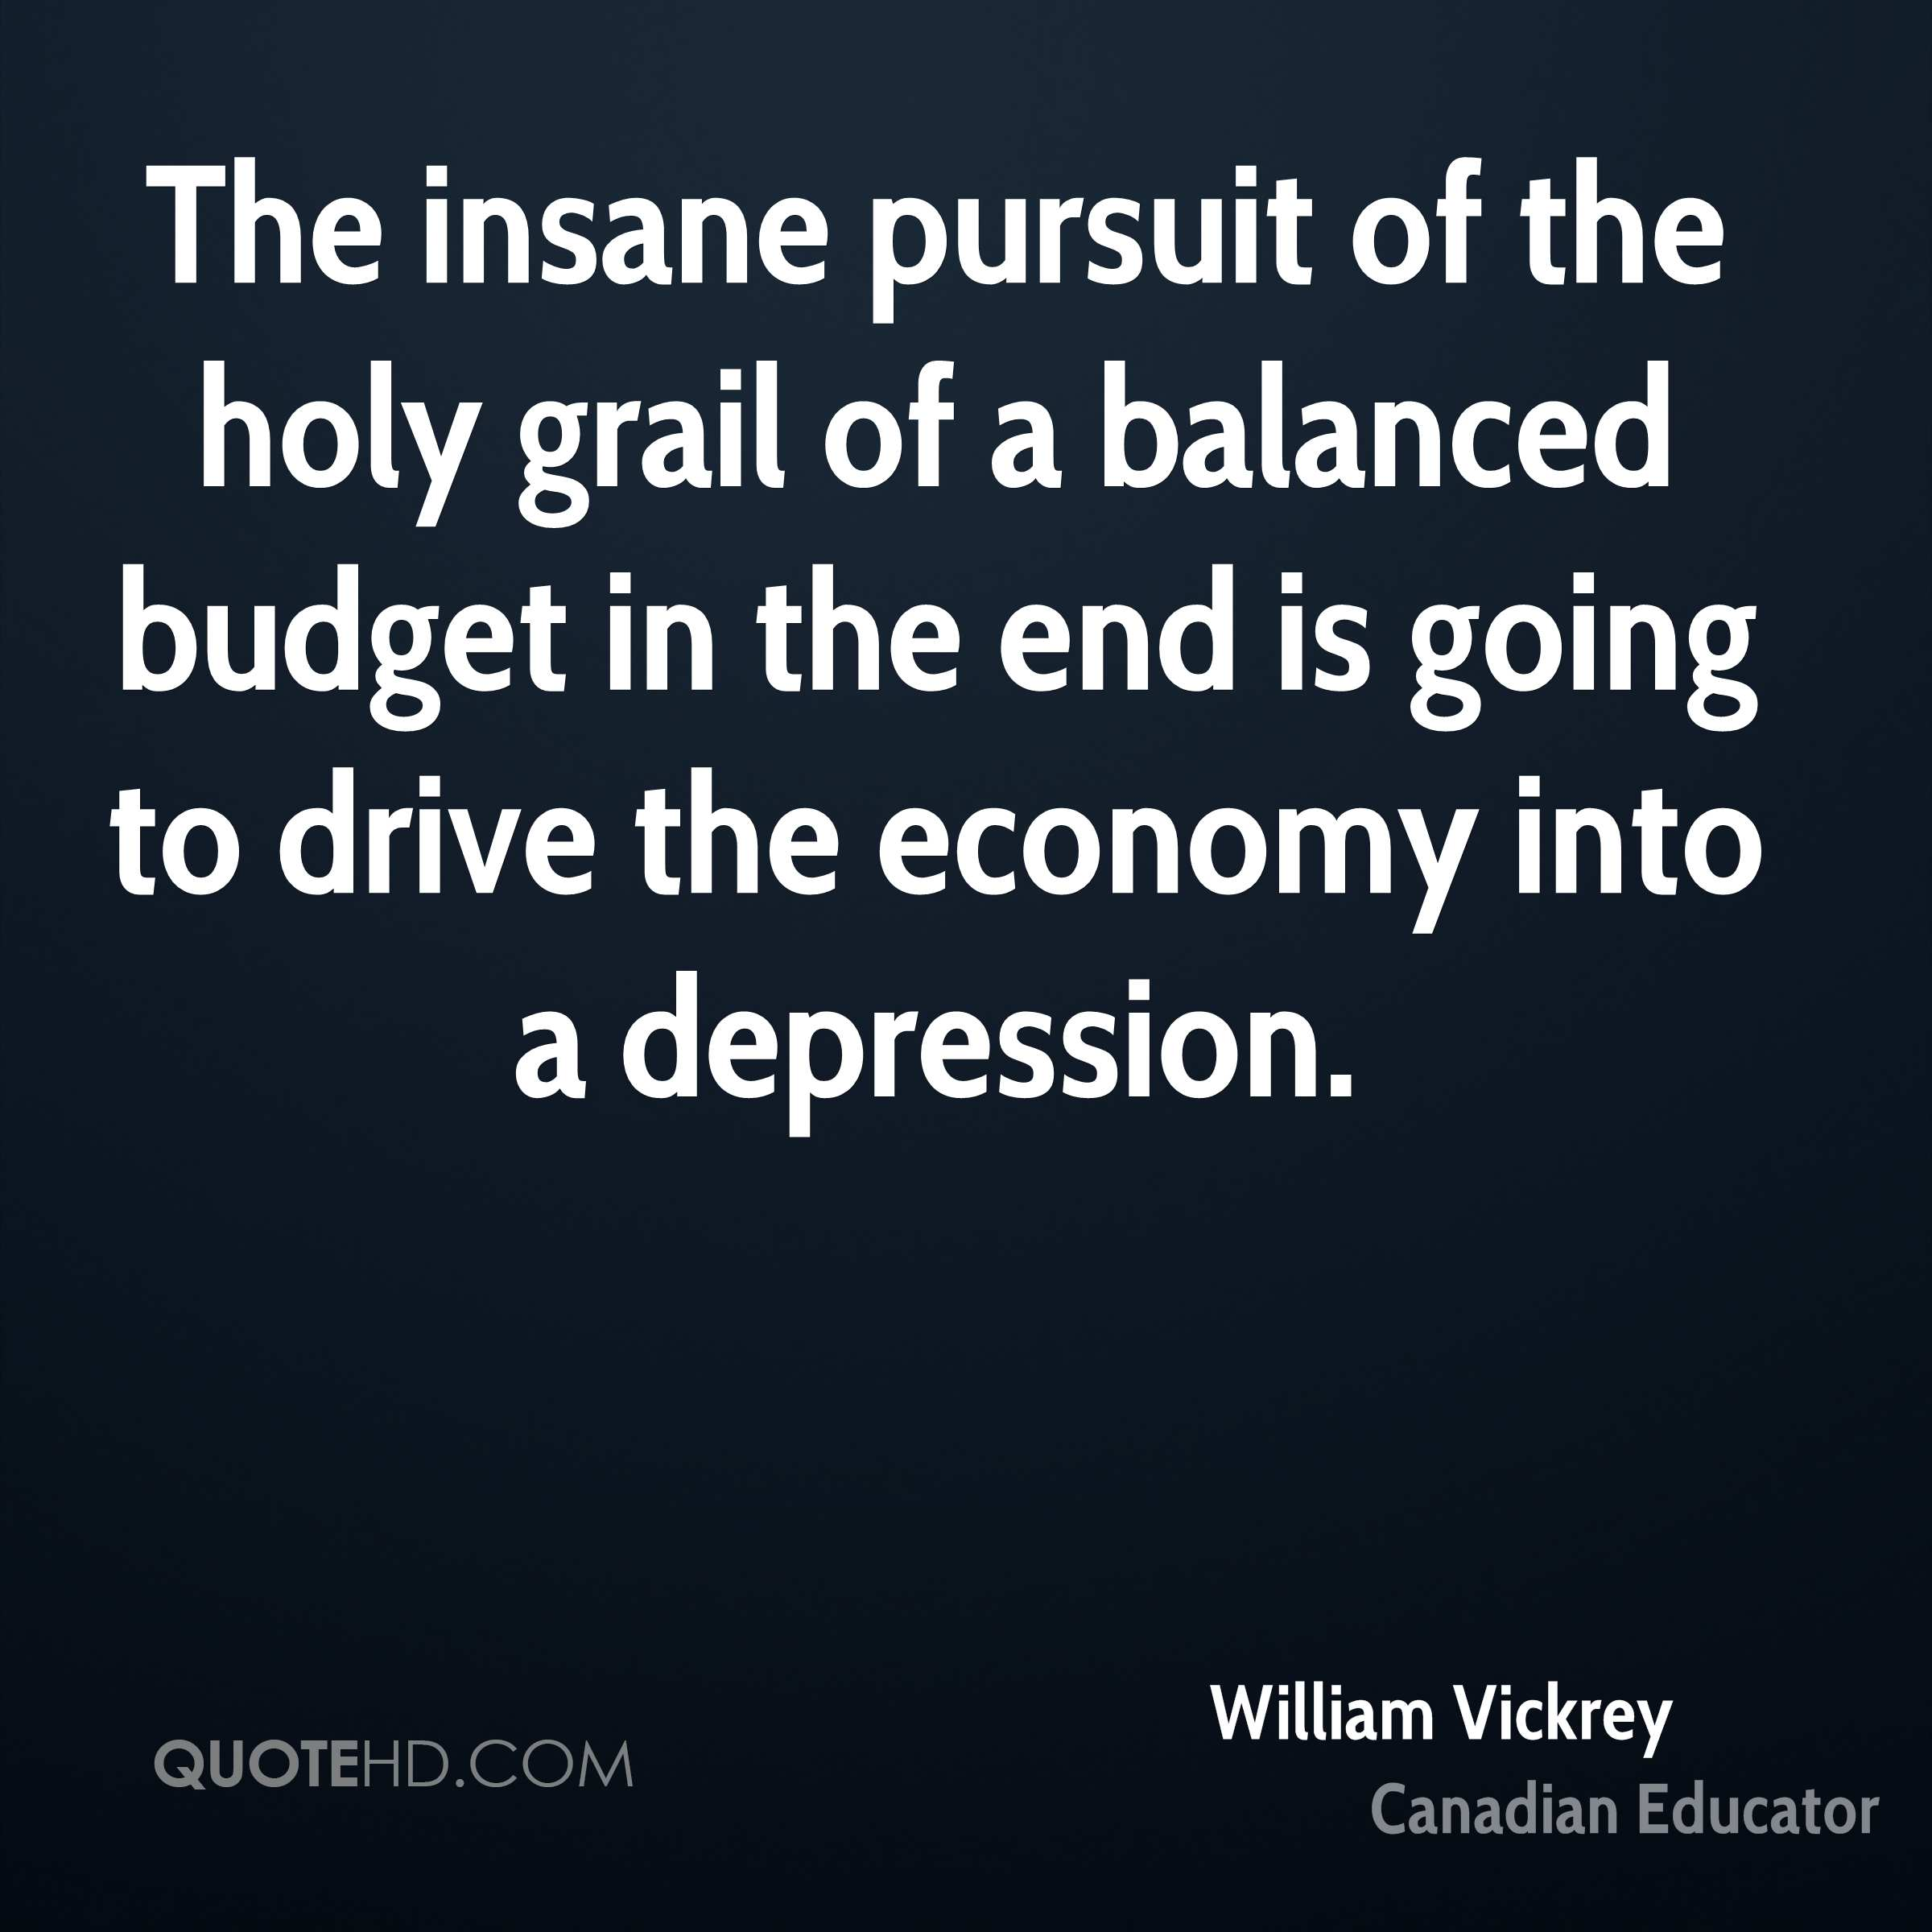 The insane pursuit of the holy grail of a balanced budget in the end is going to drive the economy into a depression.